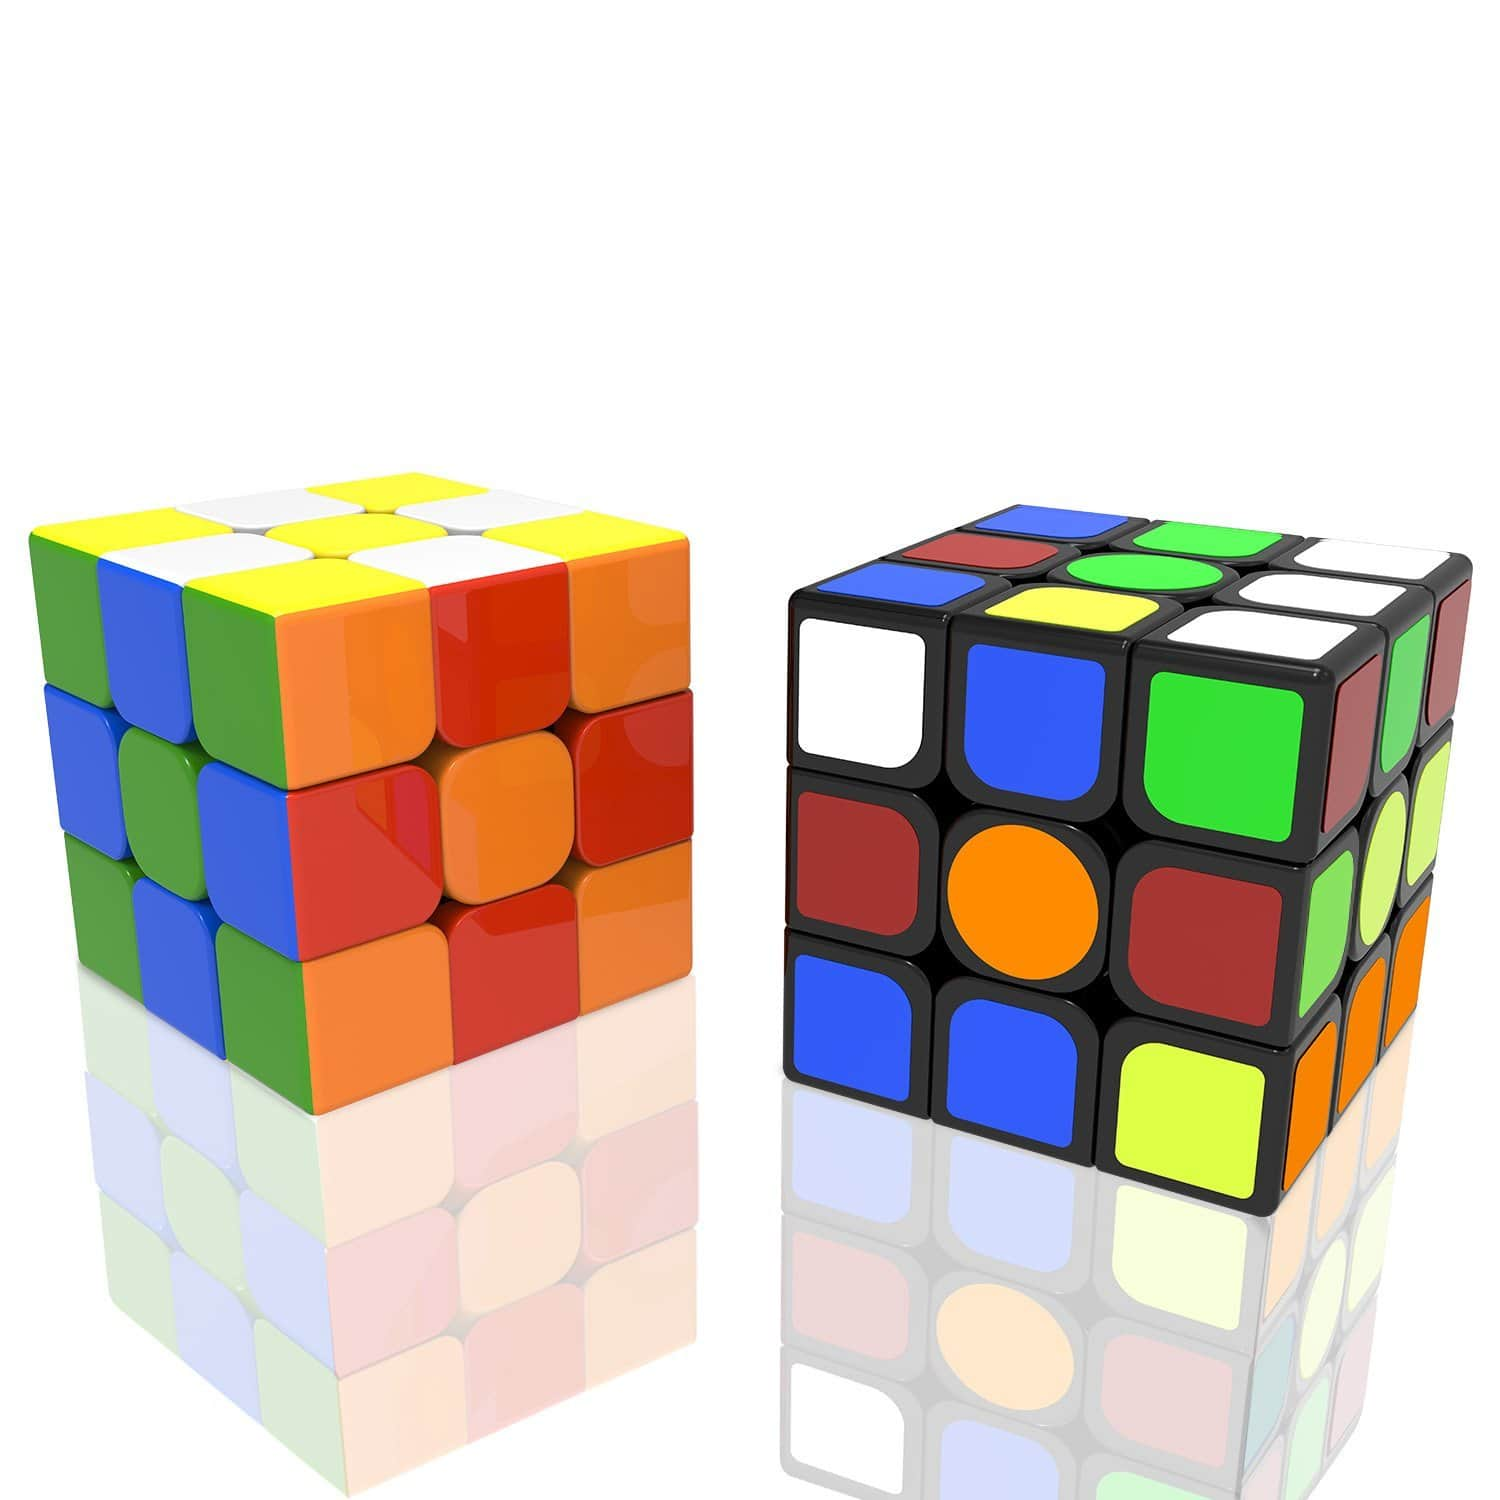 "Prime: 2 Pack 3x3 Speed Cube ""Rubik's cube"" $7.99"